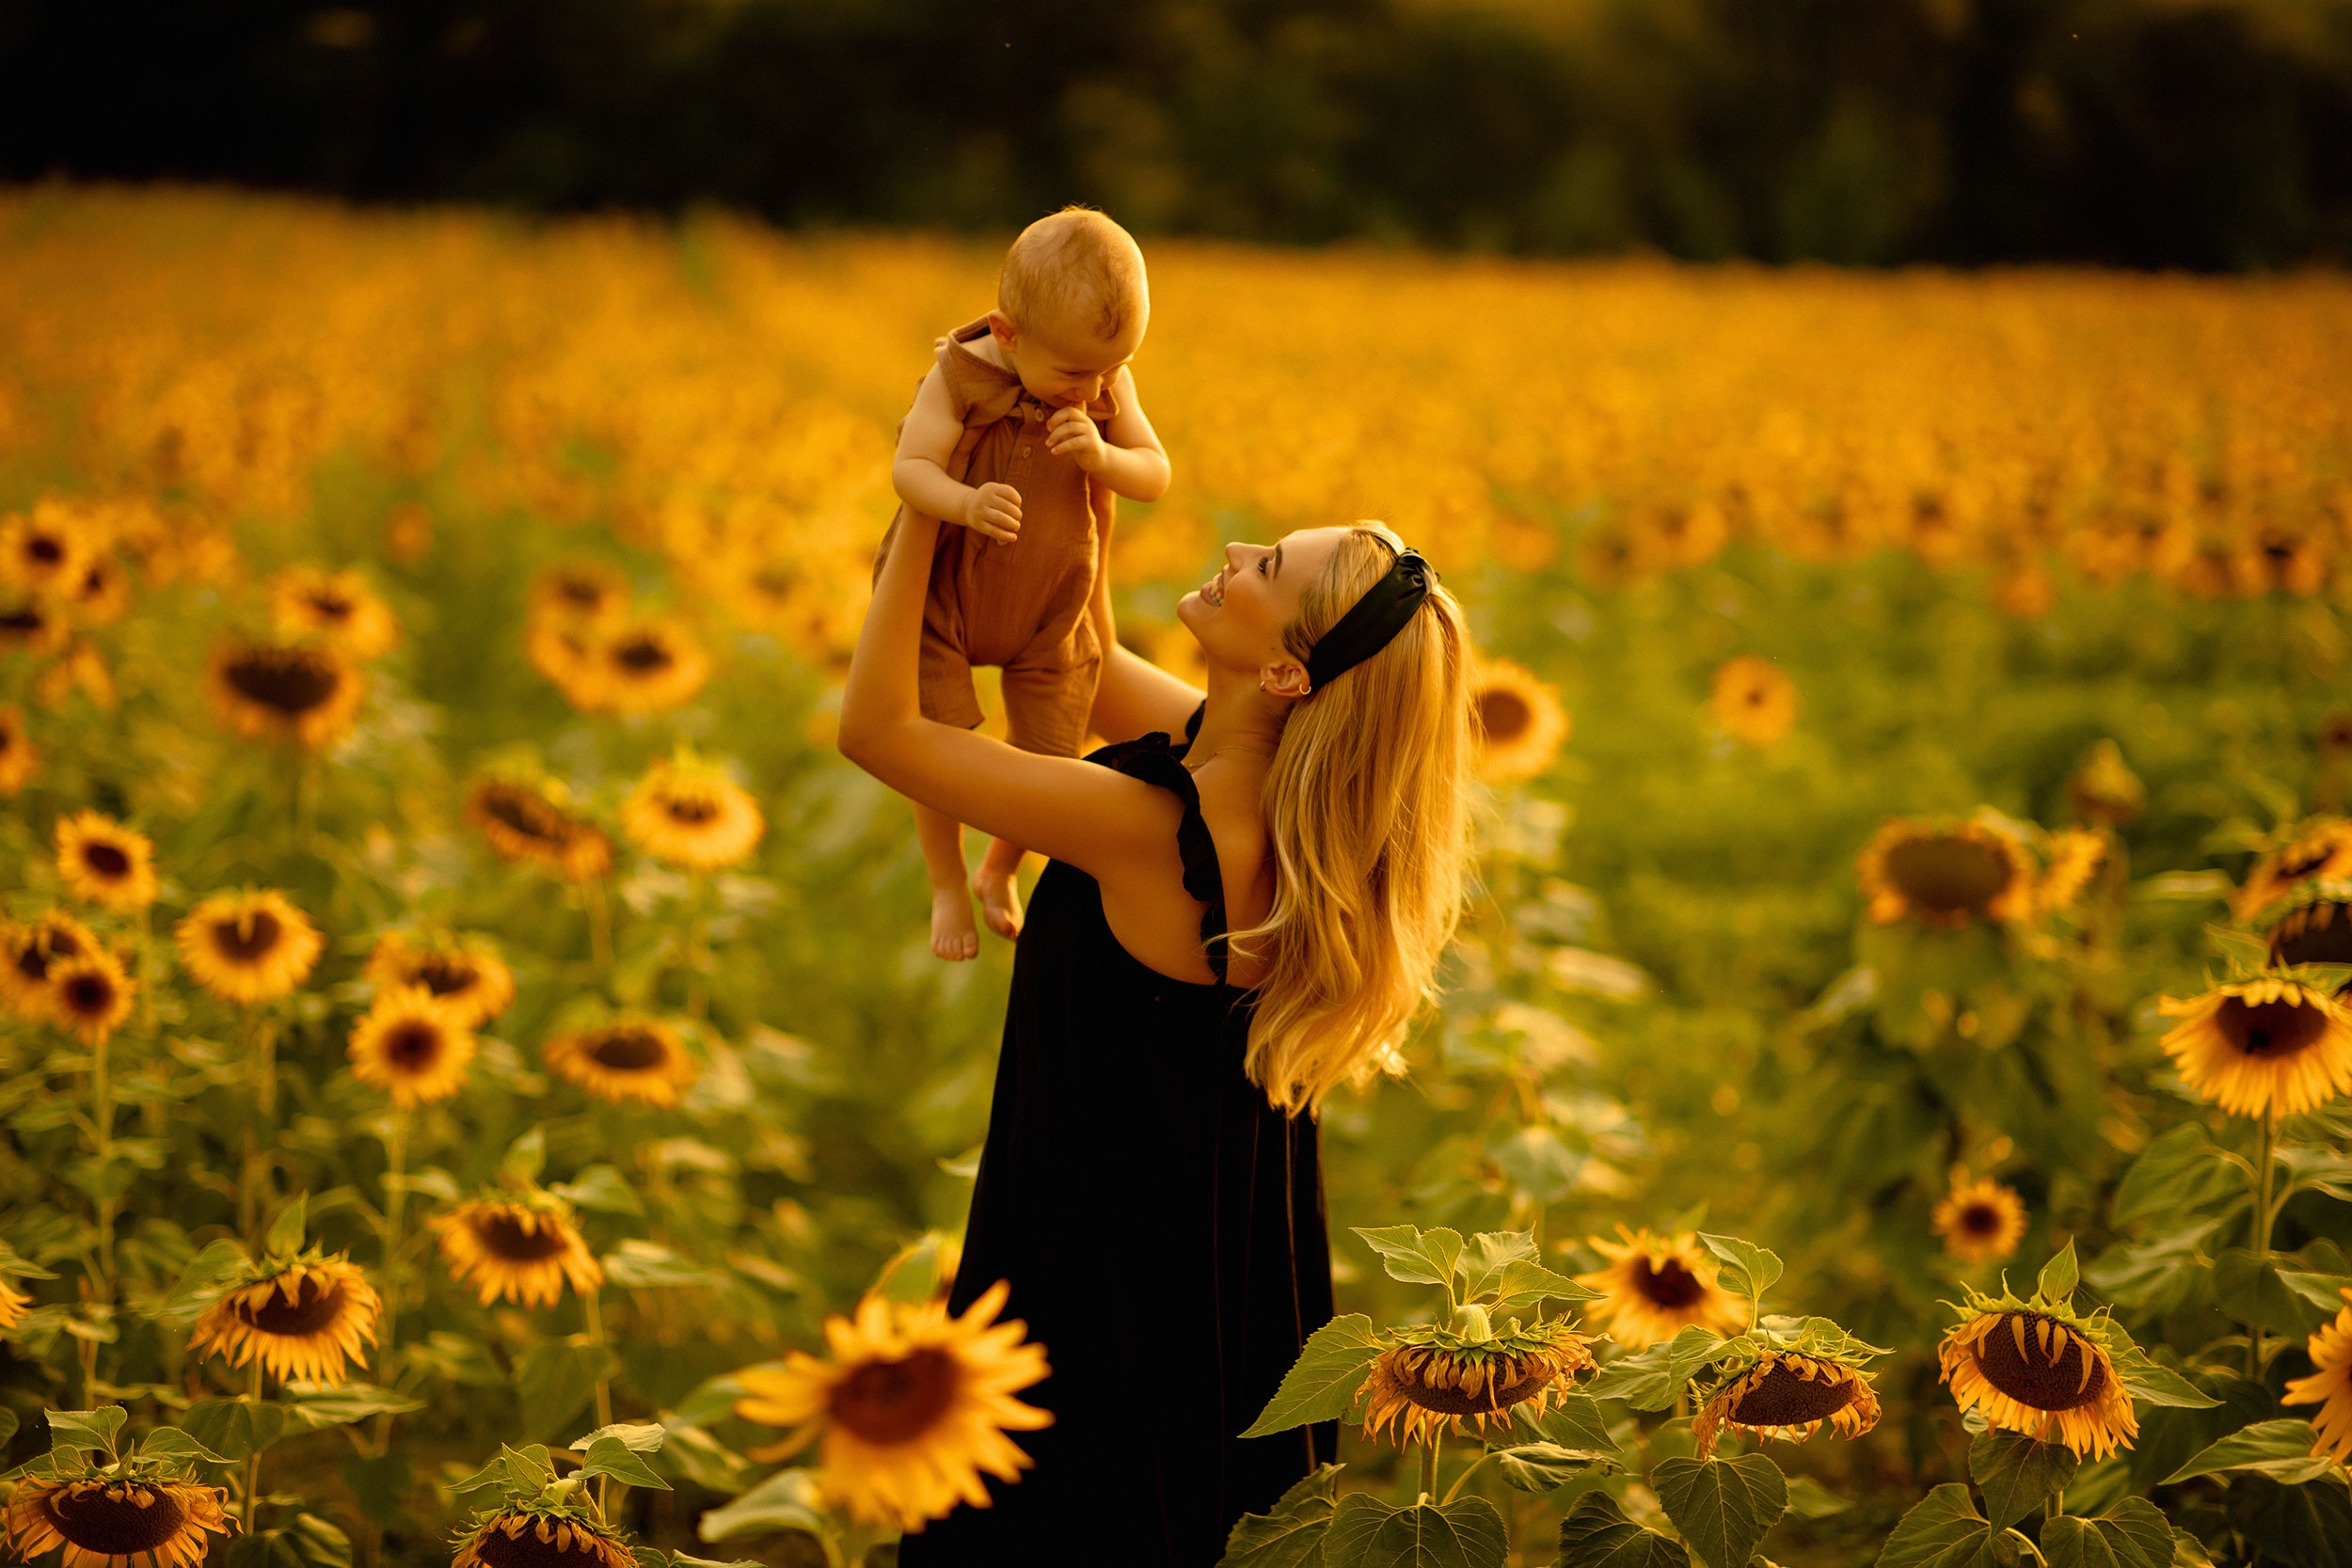 Mother holding her baby up in nature